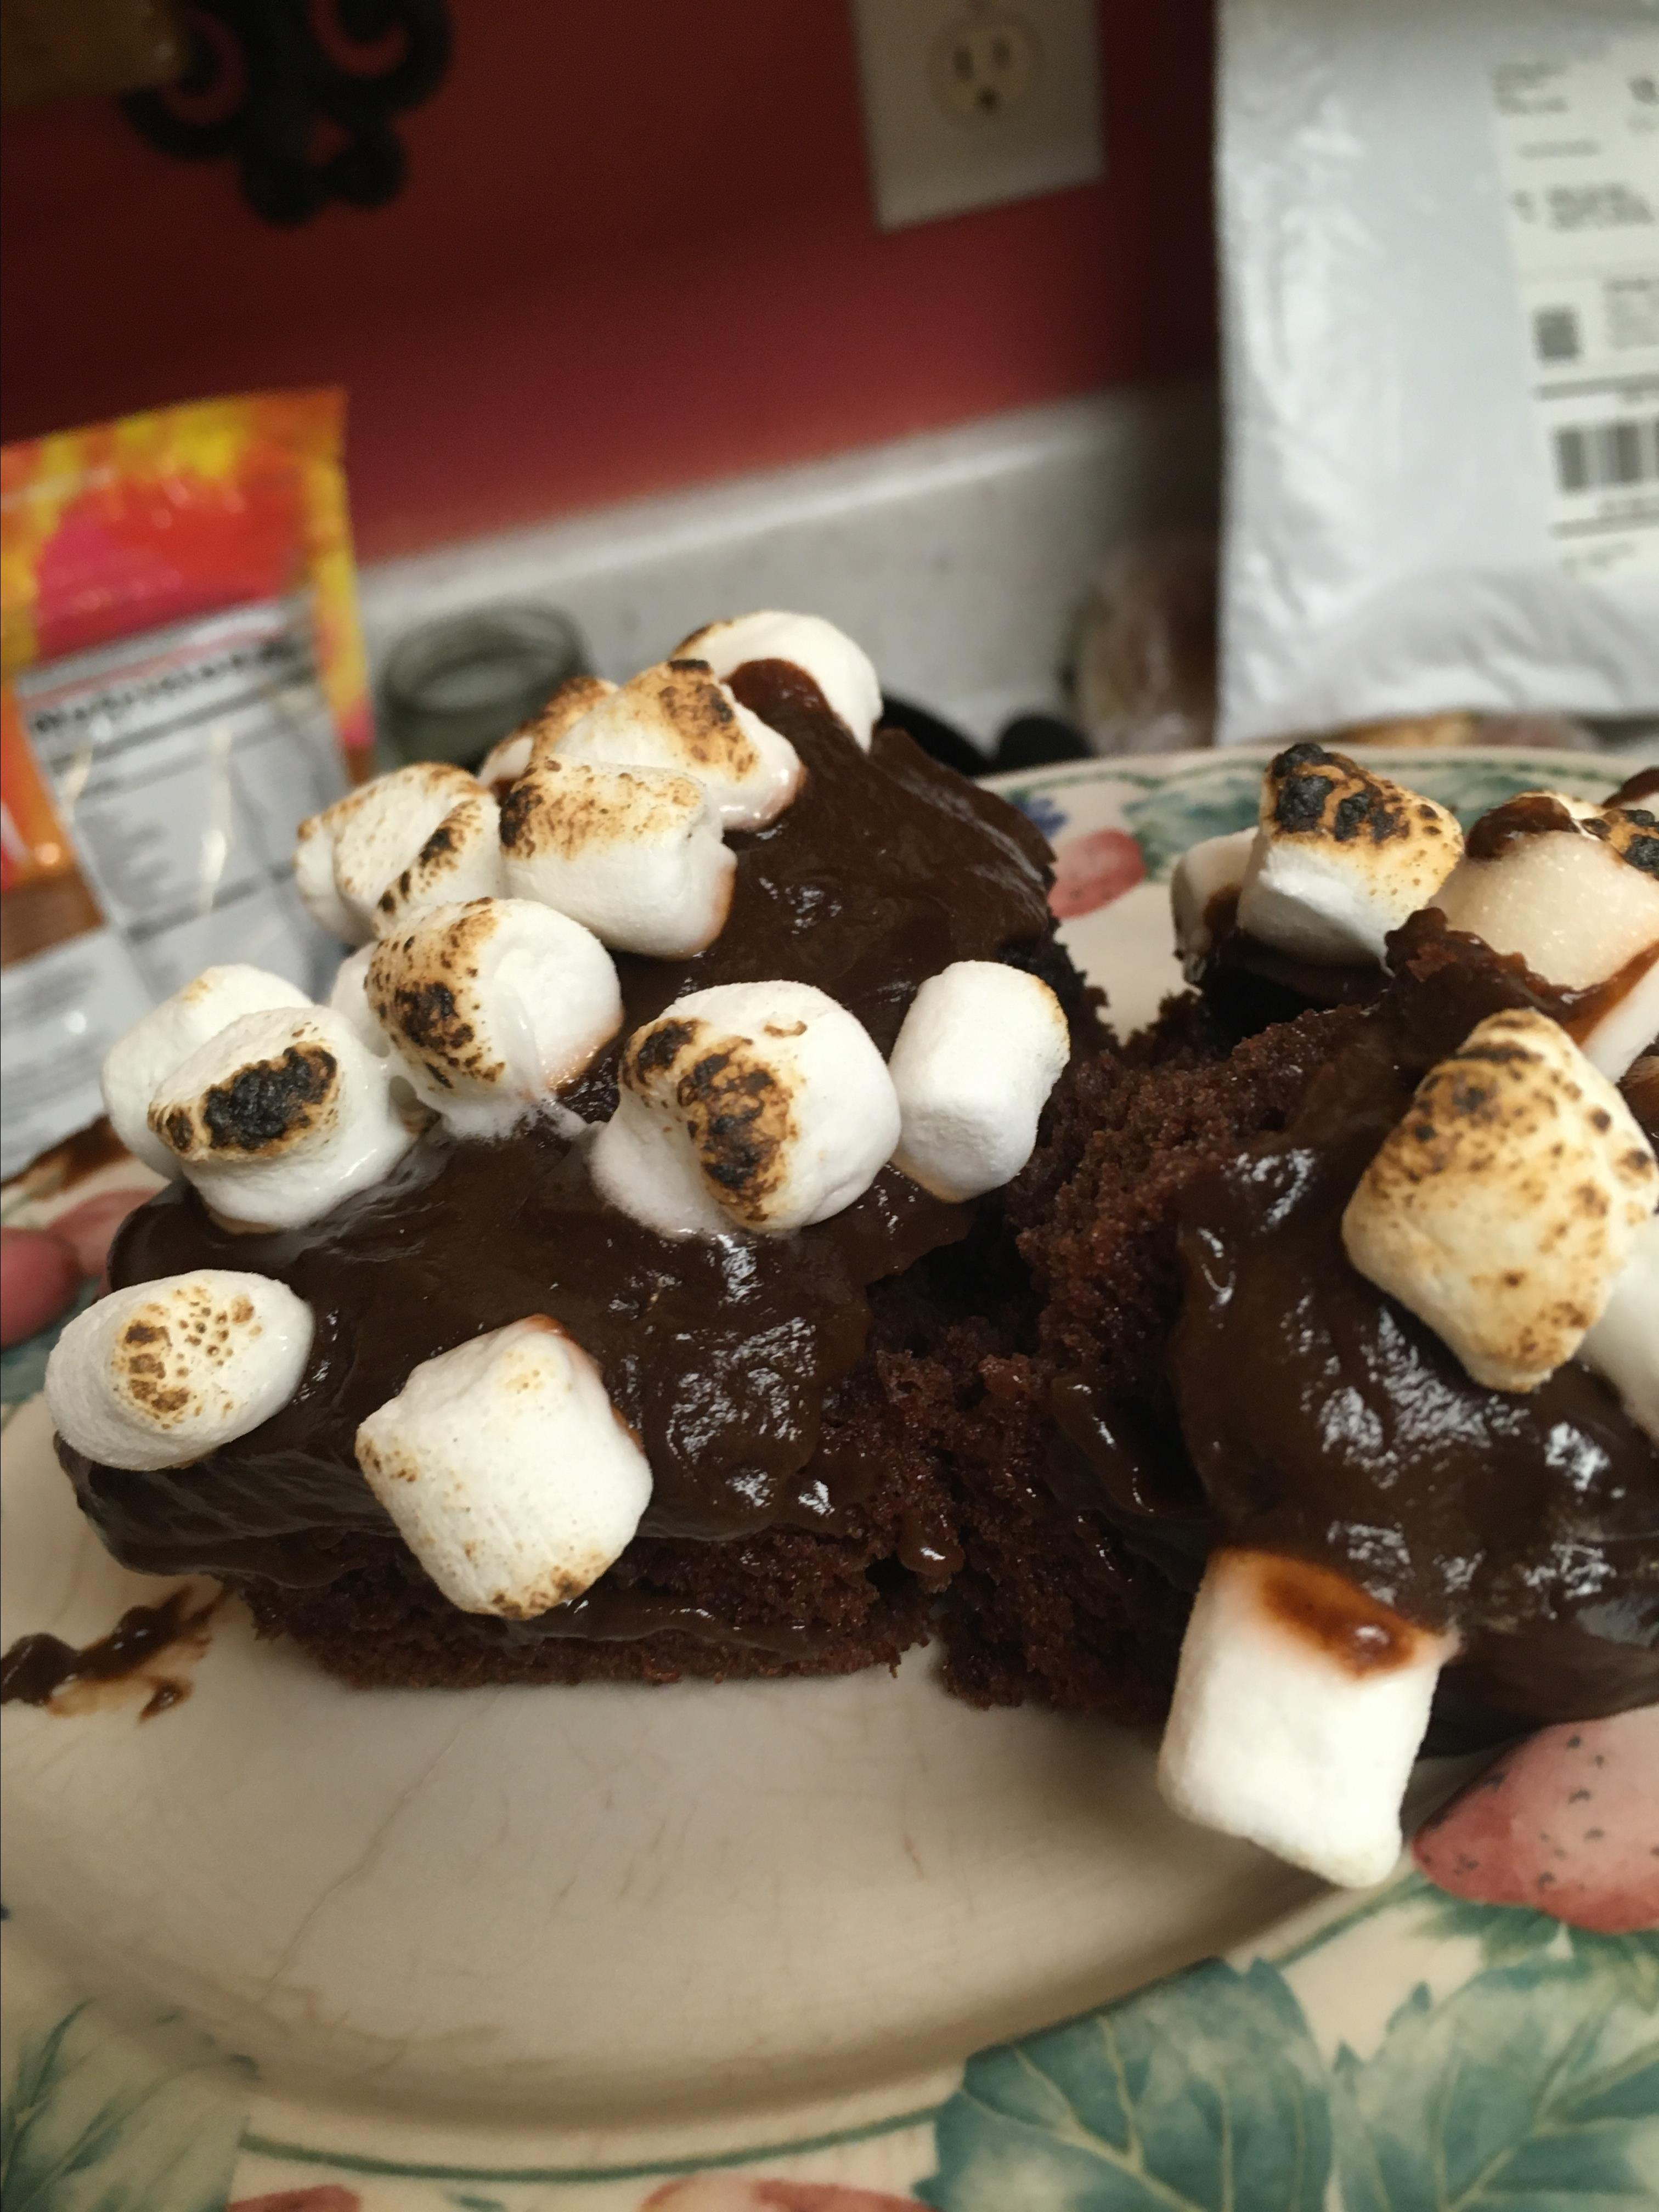 Toasted Marshmallow-Chocolate Pudding Cake hutch